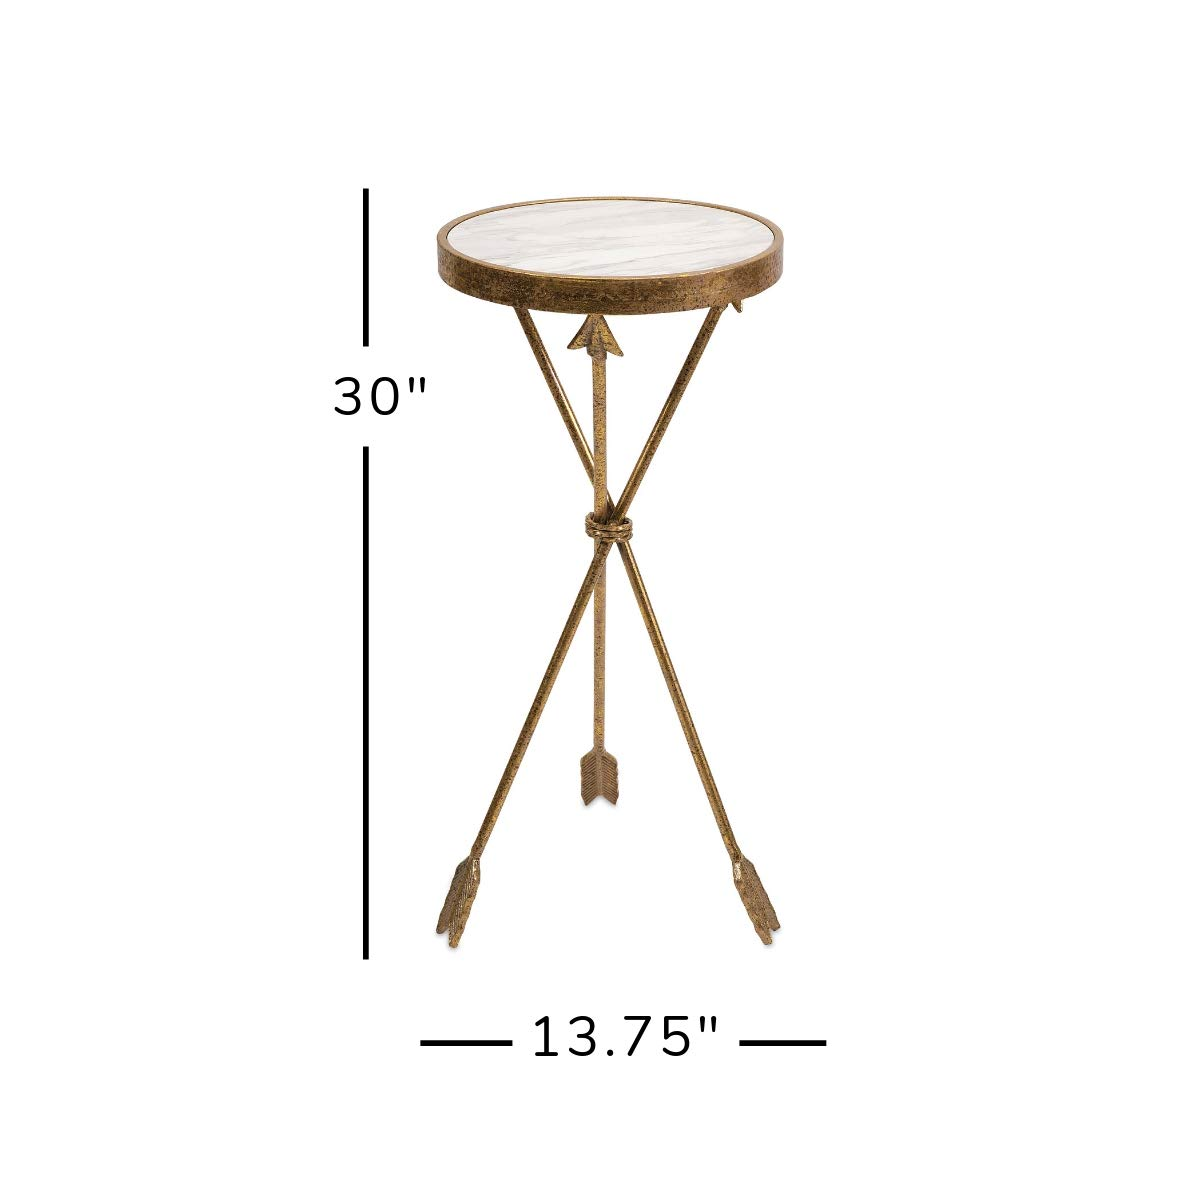 imax arrow marble top table kitchen dining oswxll gold accent with reclaimed wood bedside resin patio side tables metal basket end ikea coffee and black glass antique oak small